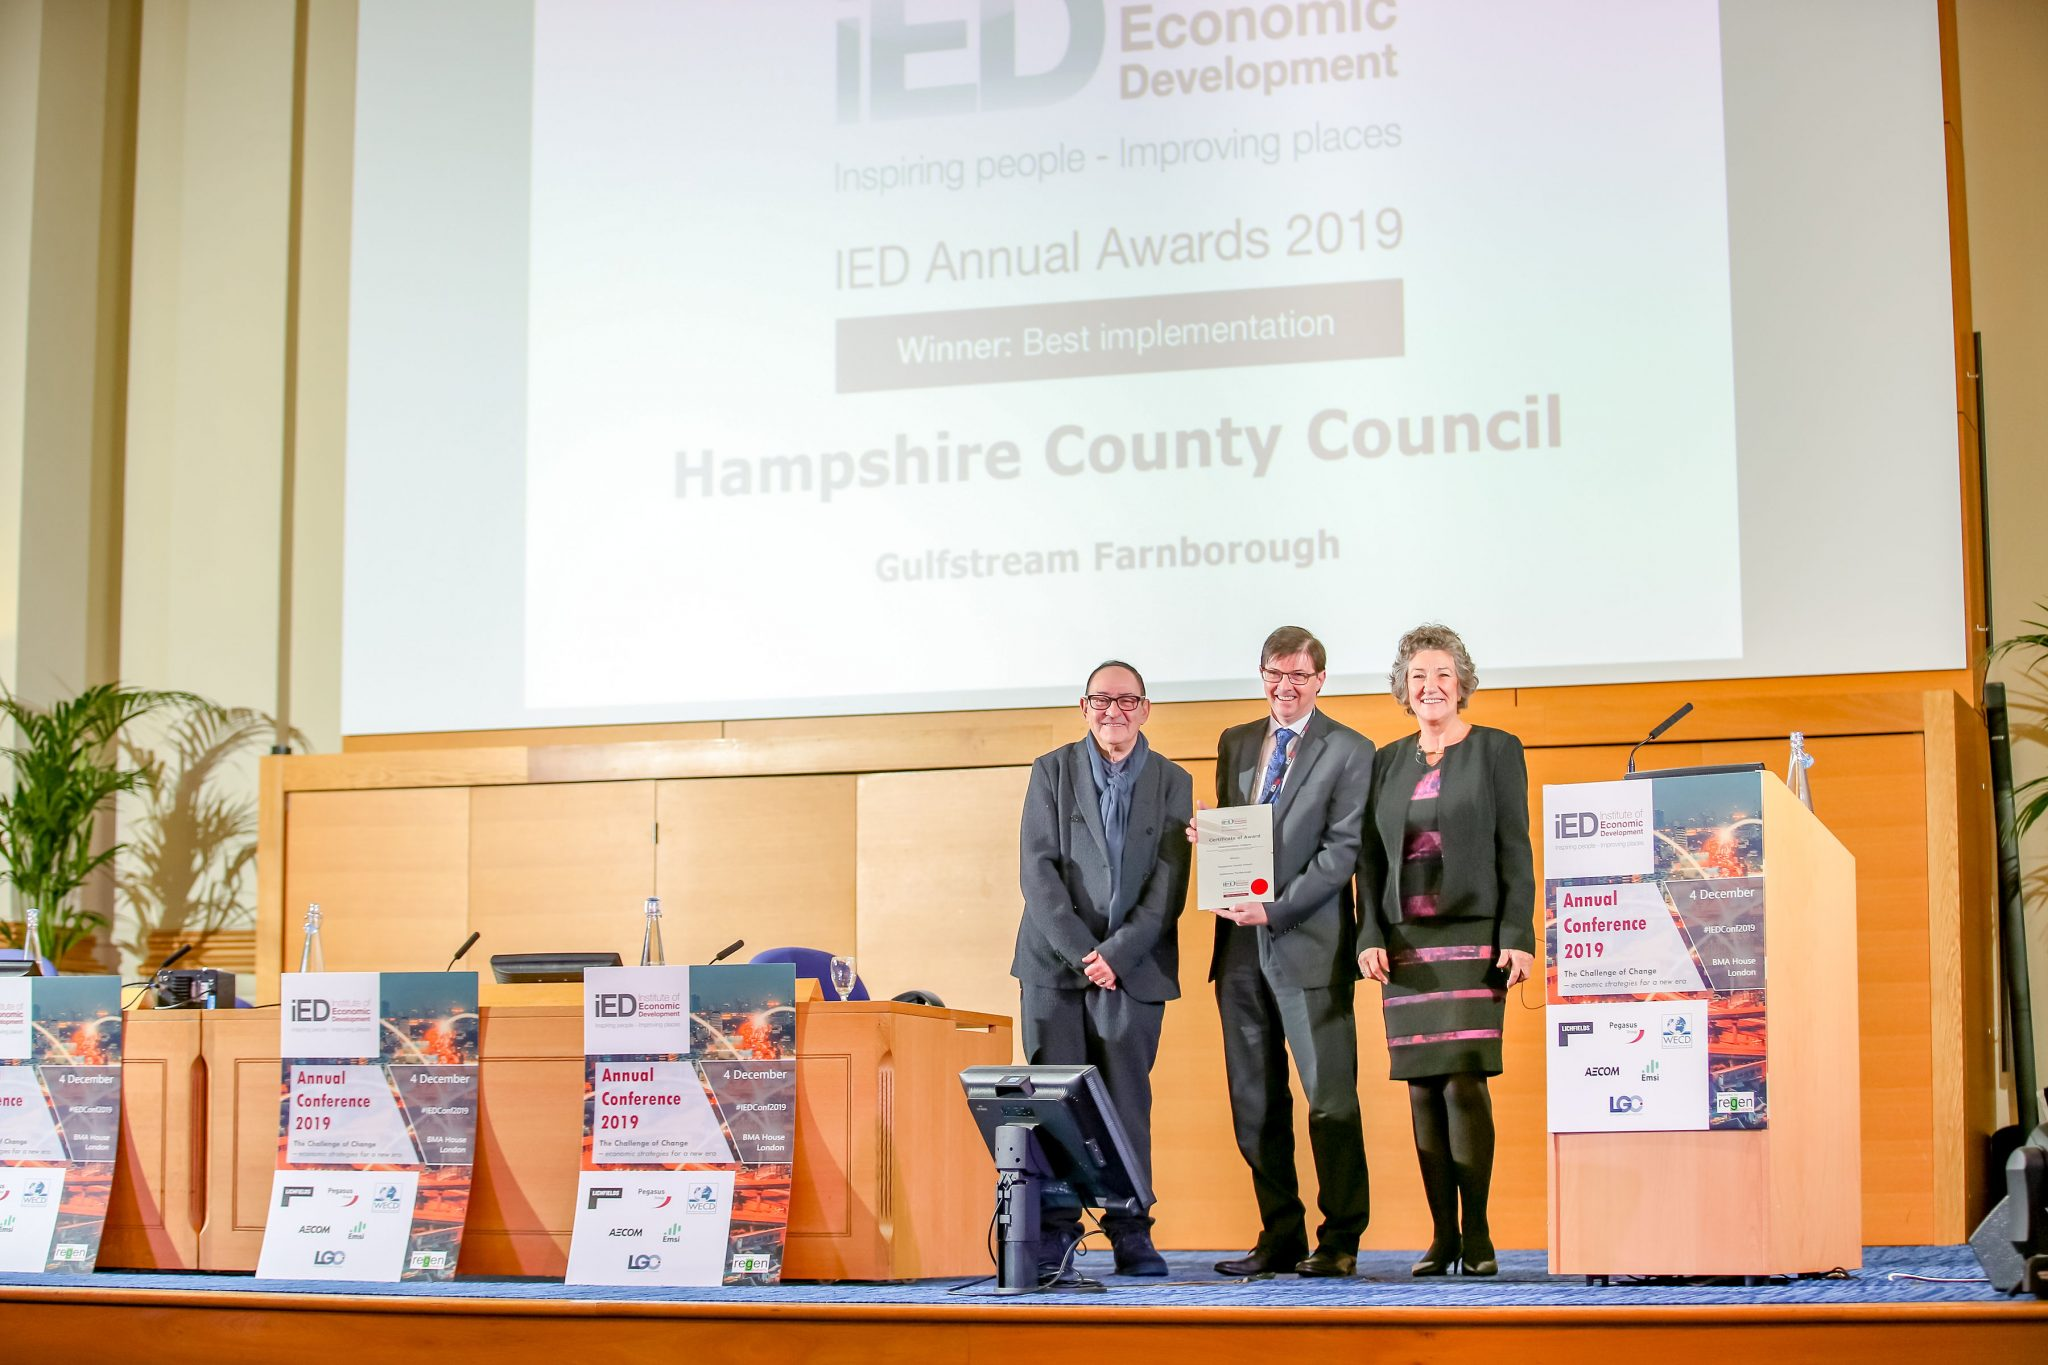 IED Annual Awards 2019: Hampshire County Council wins Best Implementation award